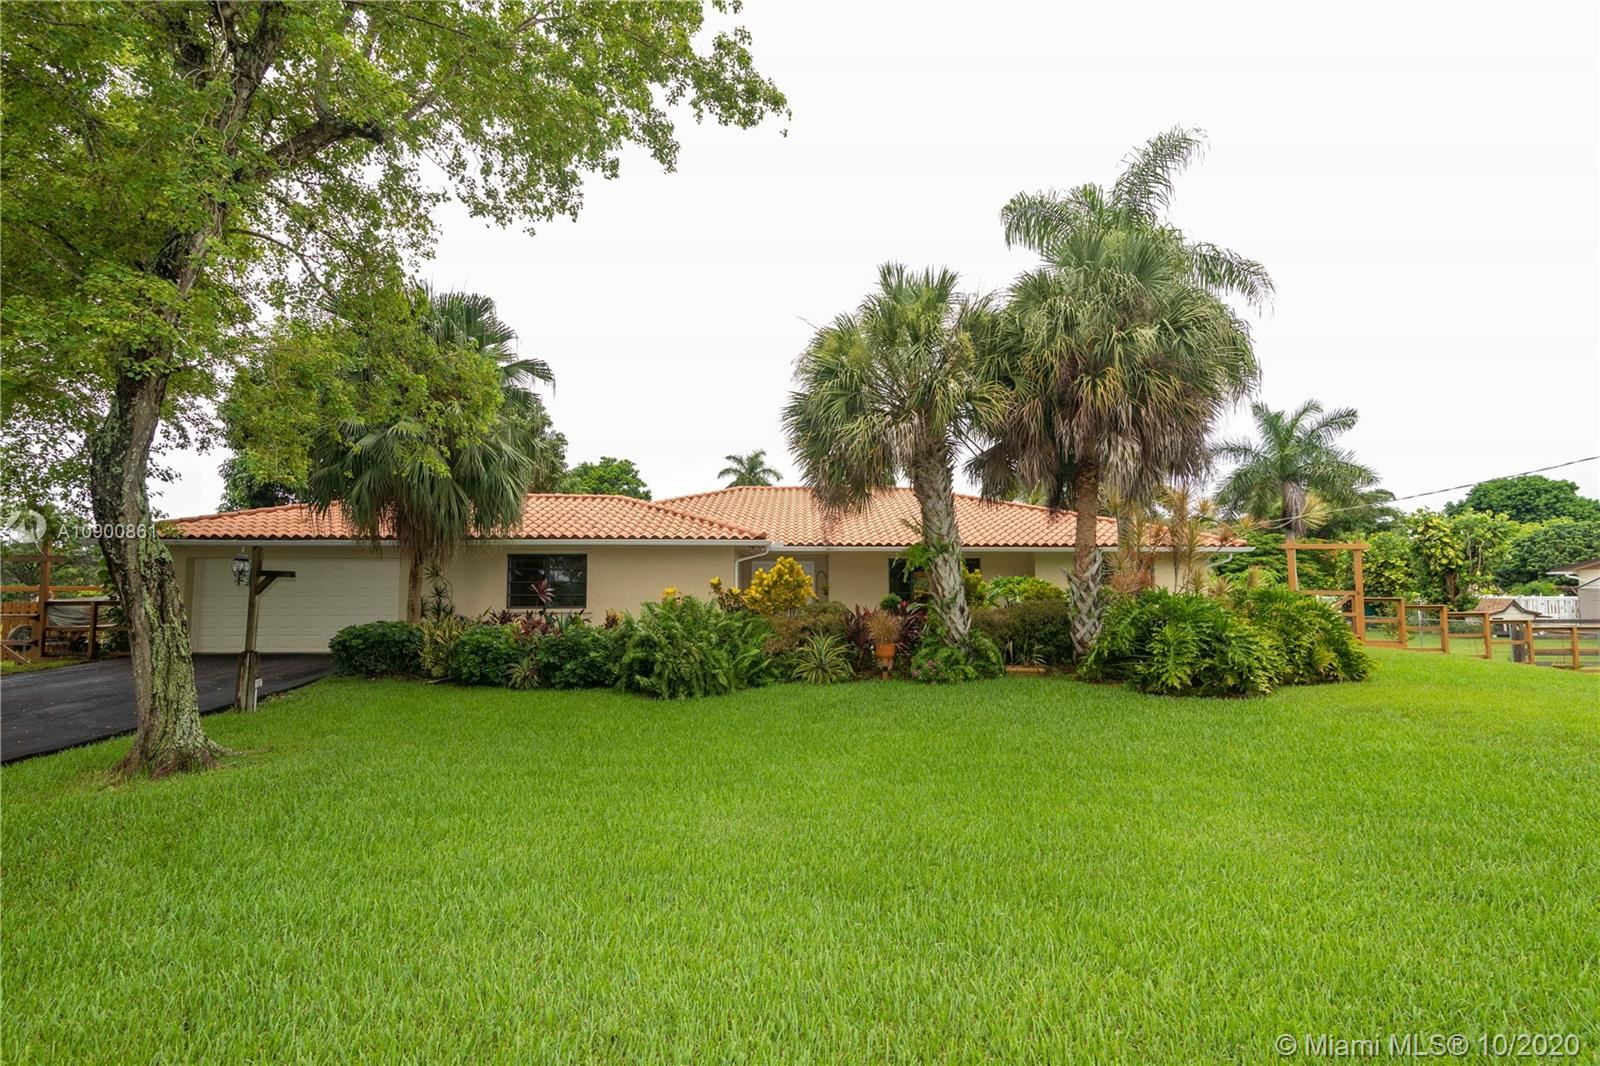 5841 SW 162nd Ave, SouthWest Ranches, FL 33331 - #: A10900861